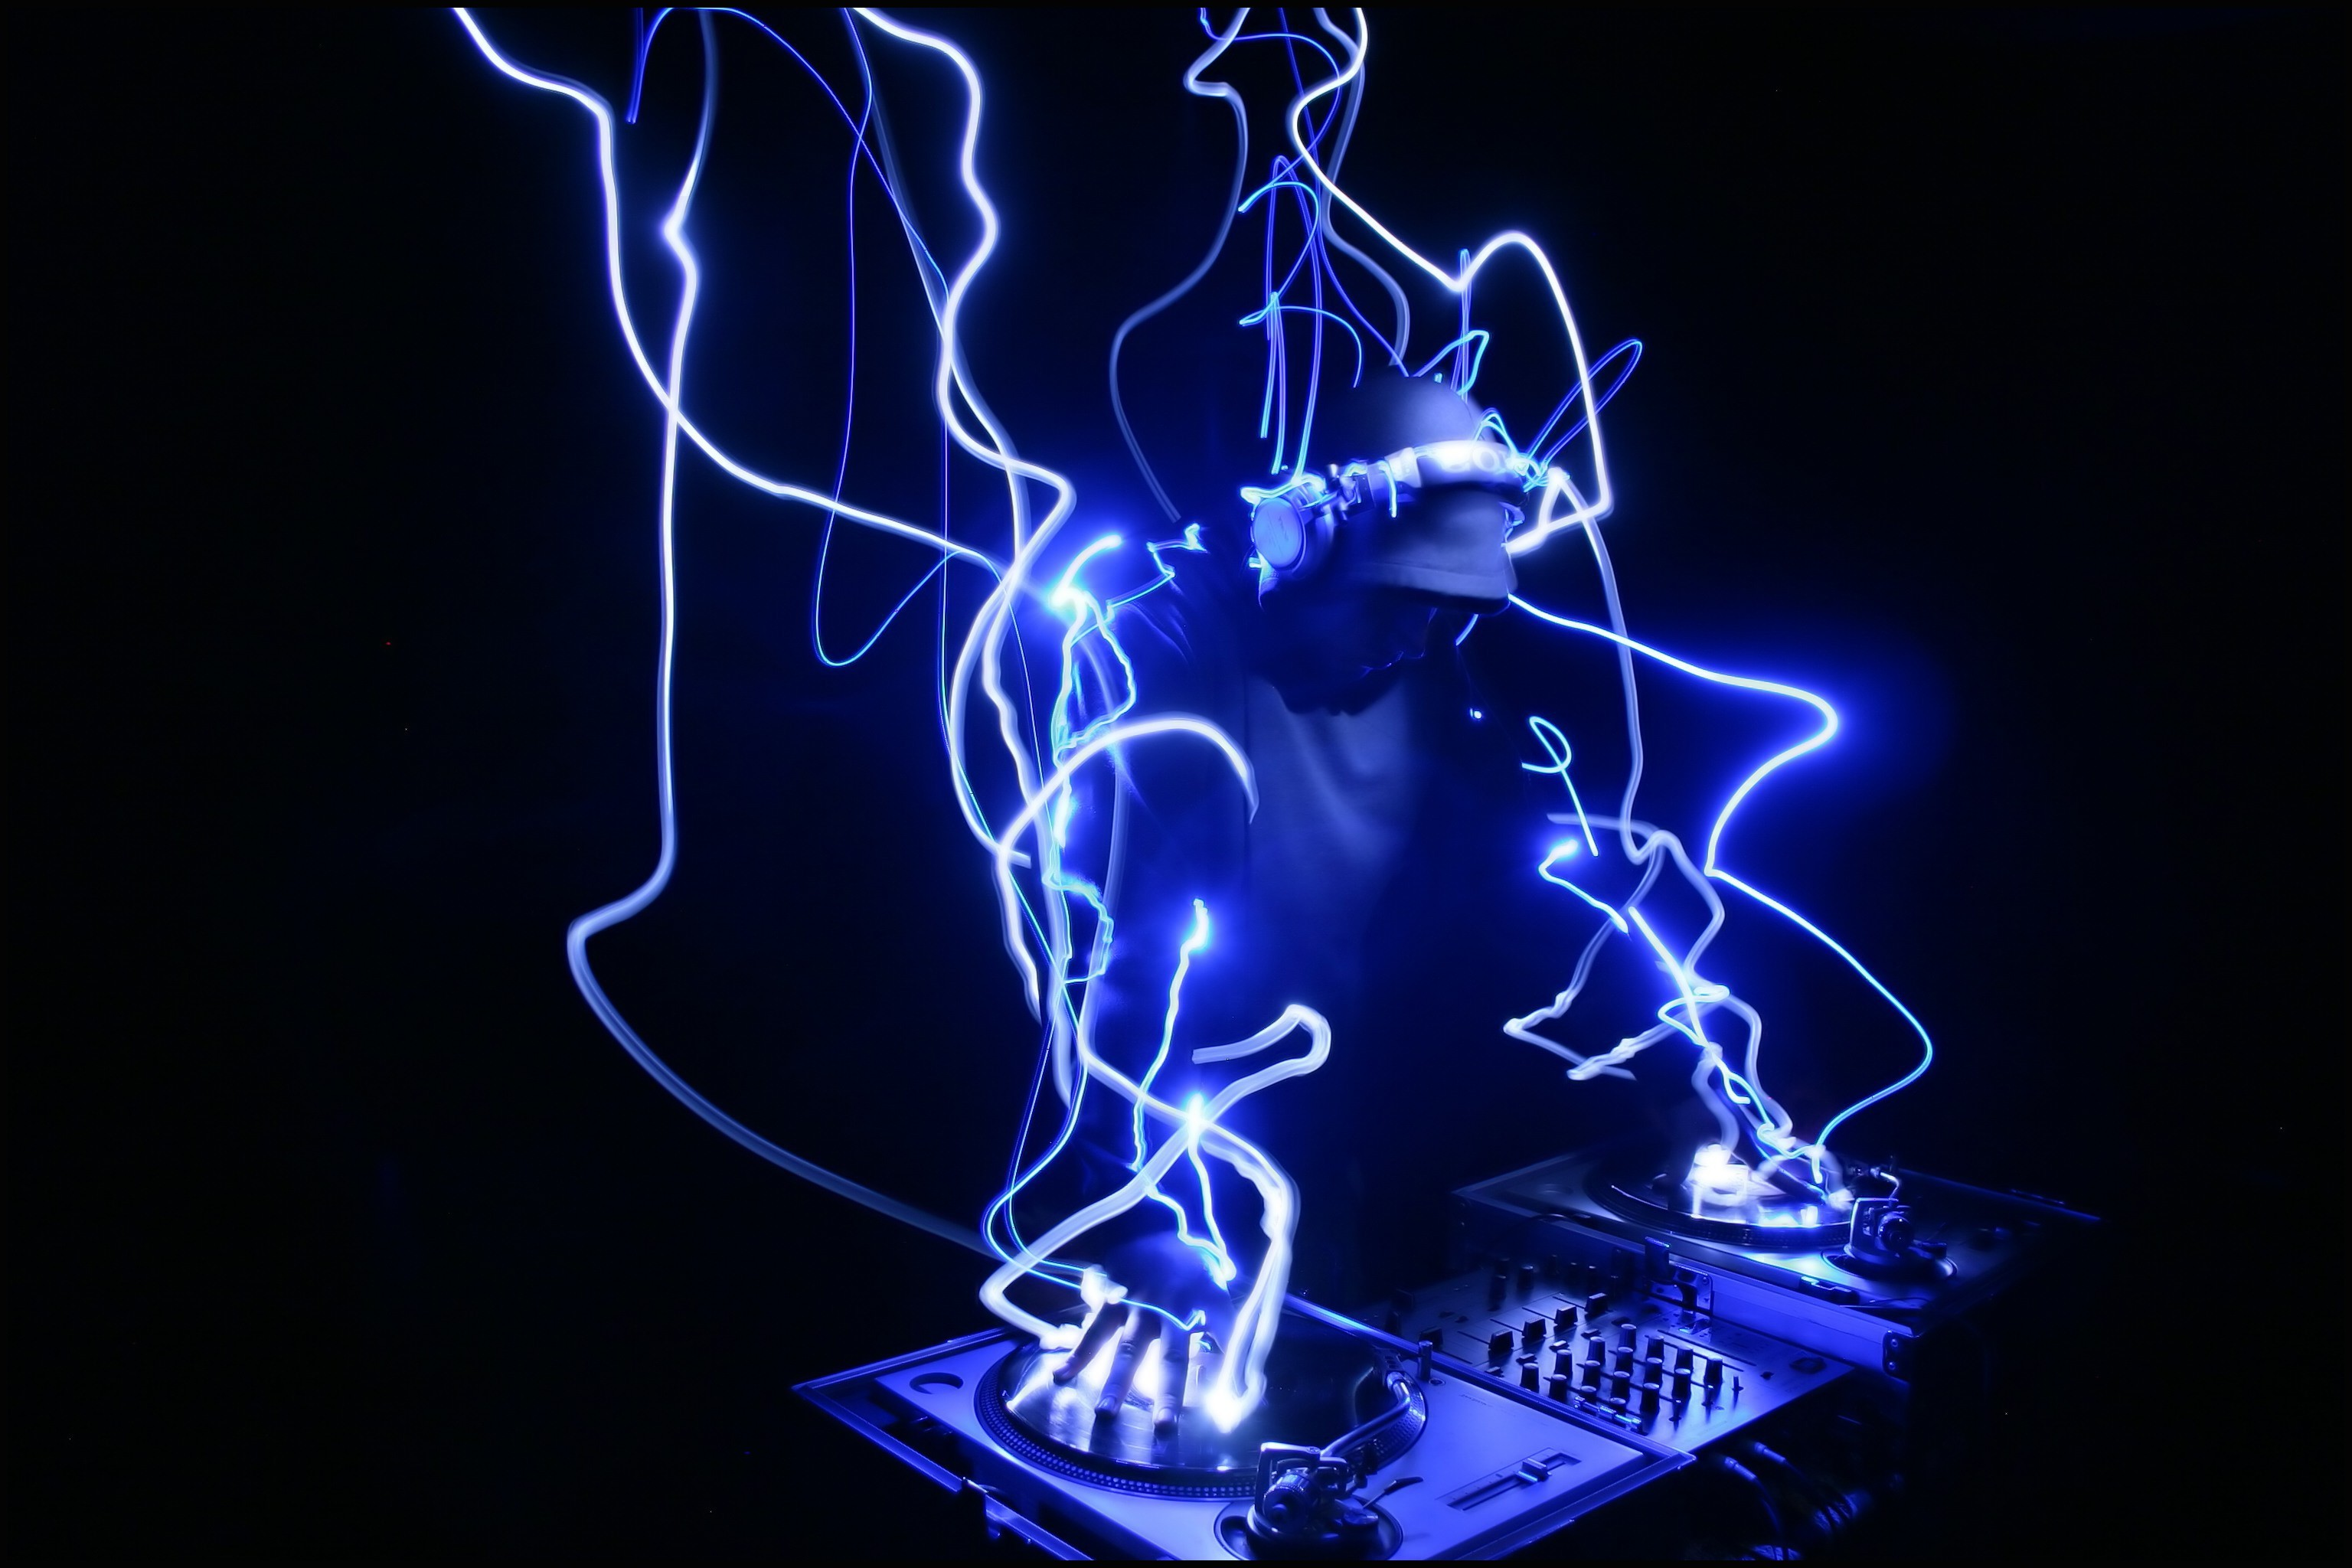 Cool Music light dj Wallpapers